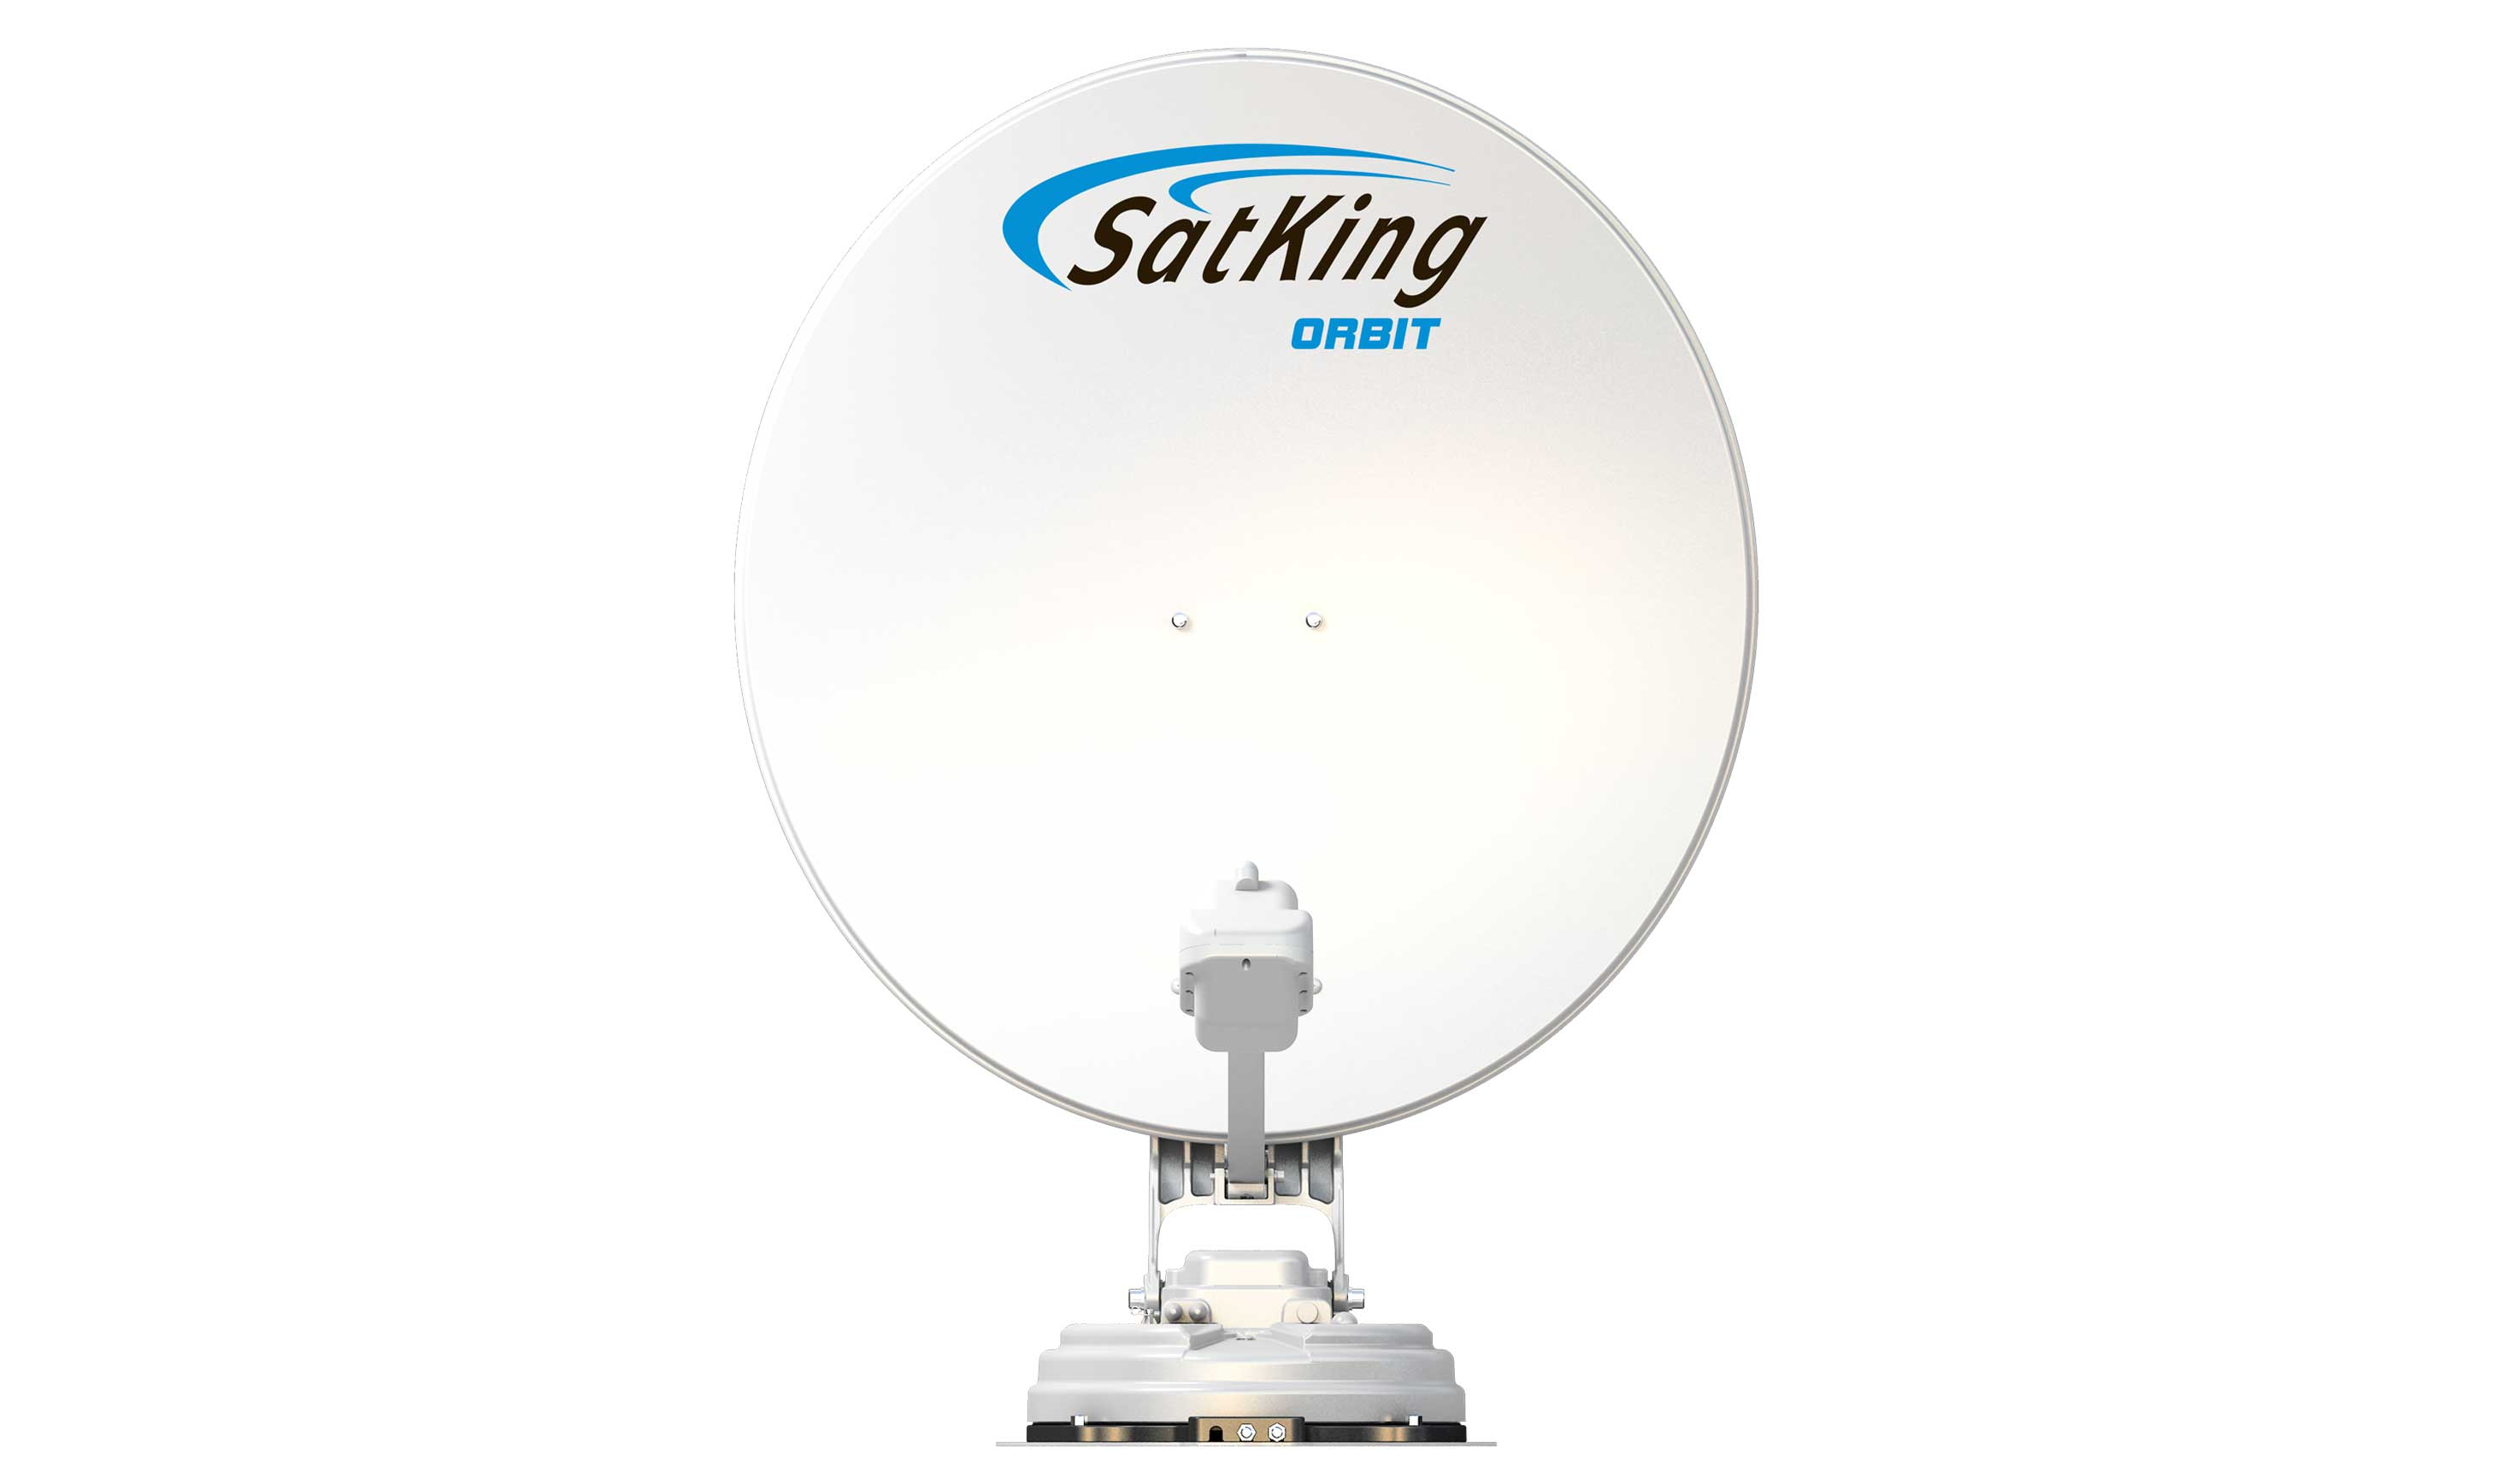 Caravan Satellite Dish